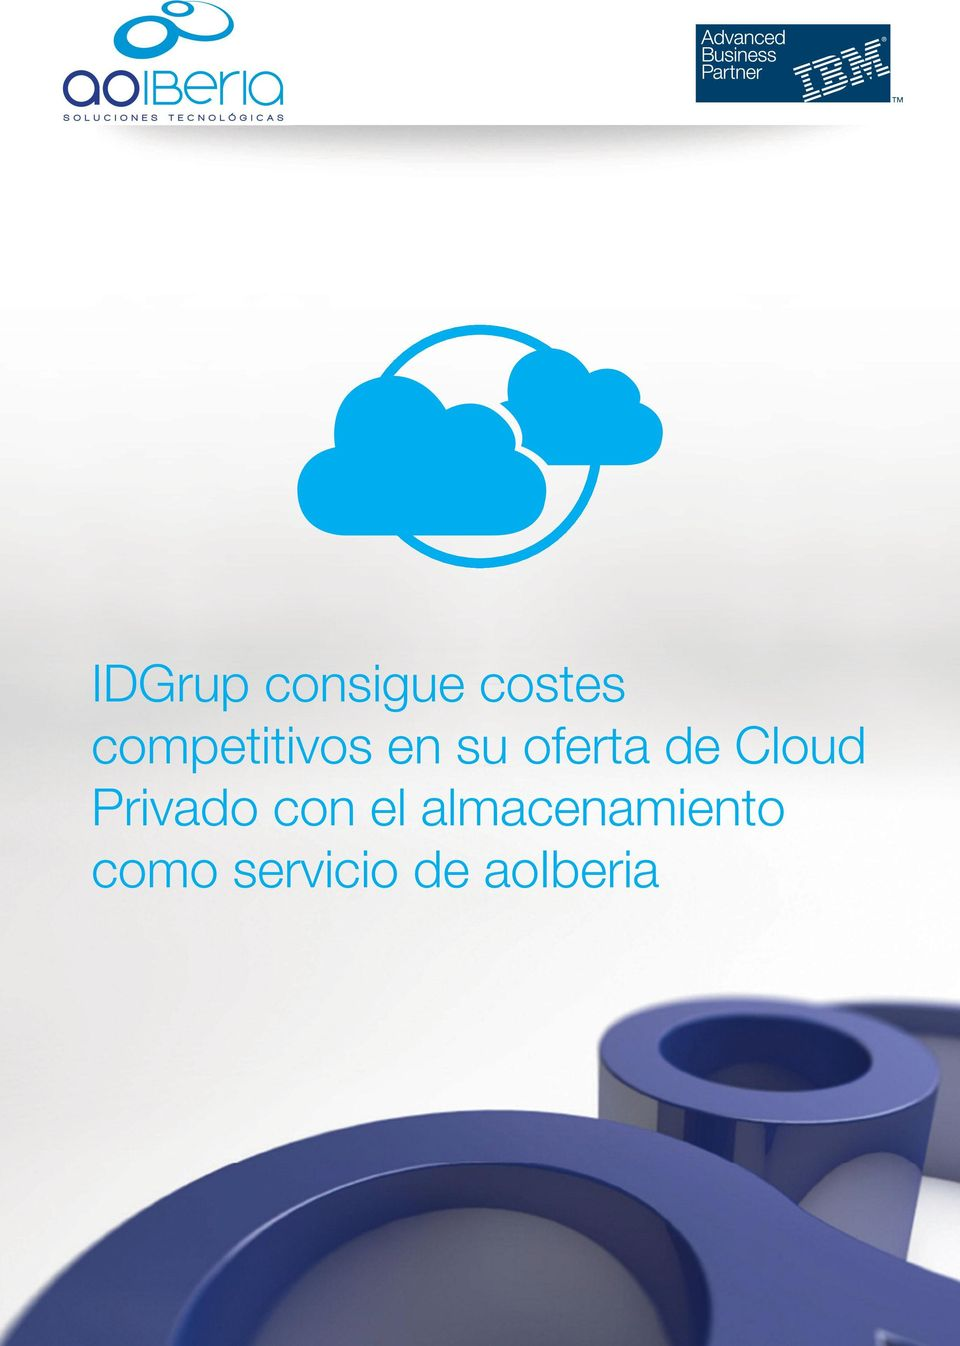 Cloud Privado con el